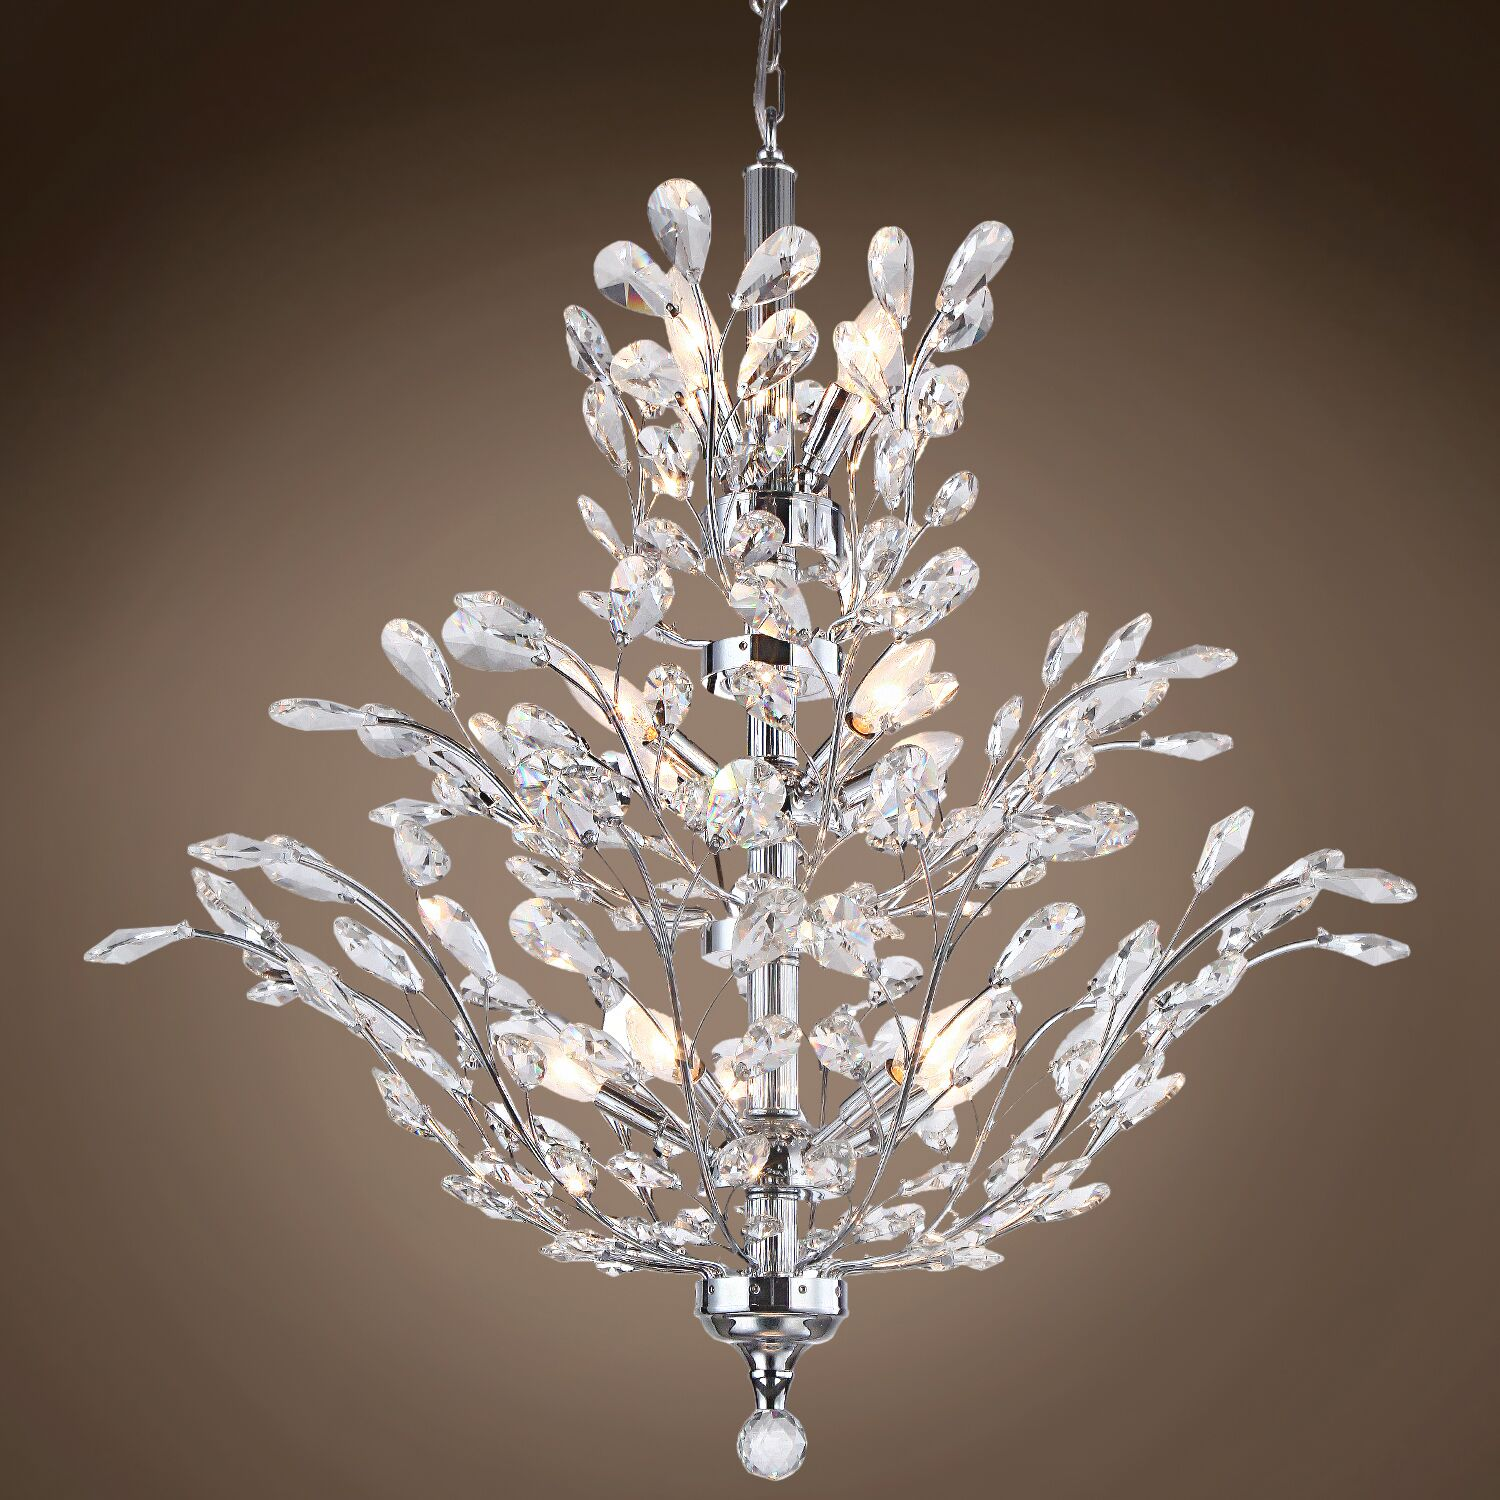 Meehan 18-Light Candle Style Chandelier Finish: Clear, Crystal Grade: Asfour, Bulb Type: LED